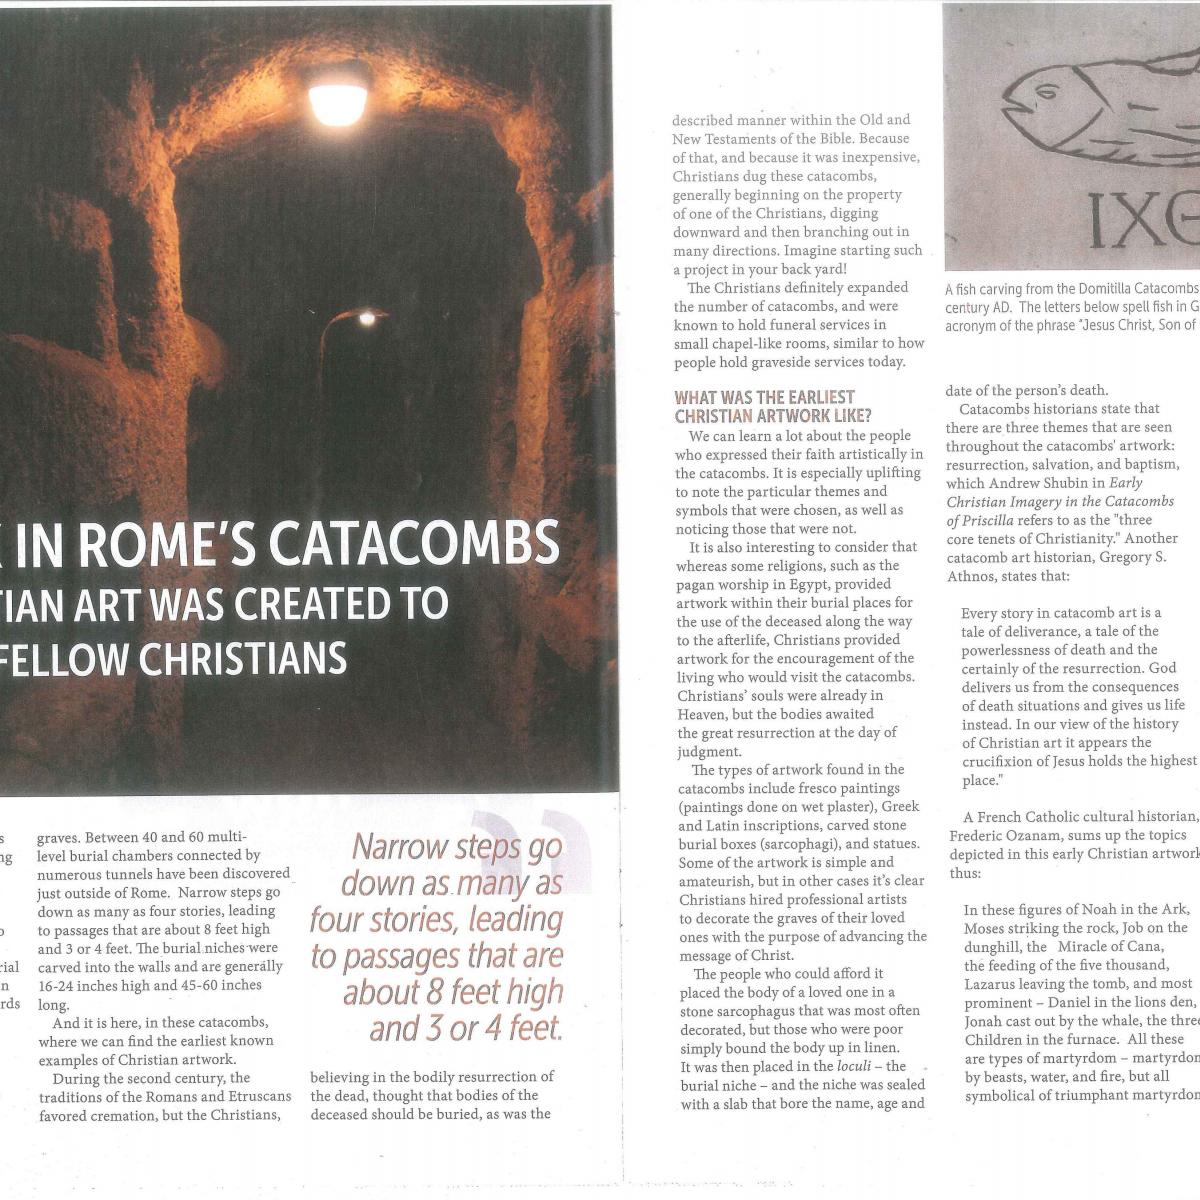 Magazine page showing photo of Roman catacombs and art history text